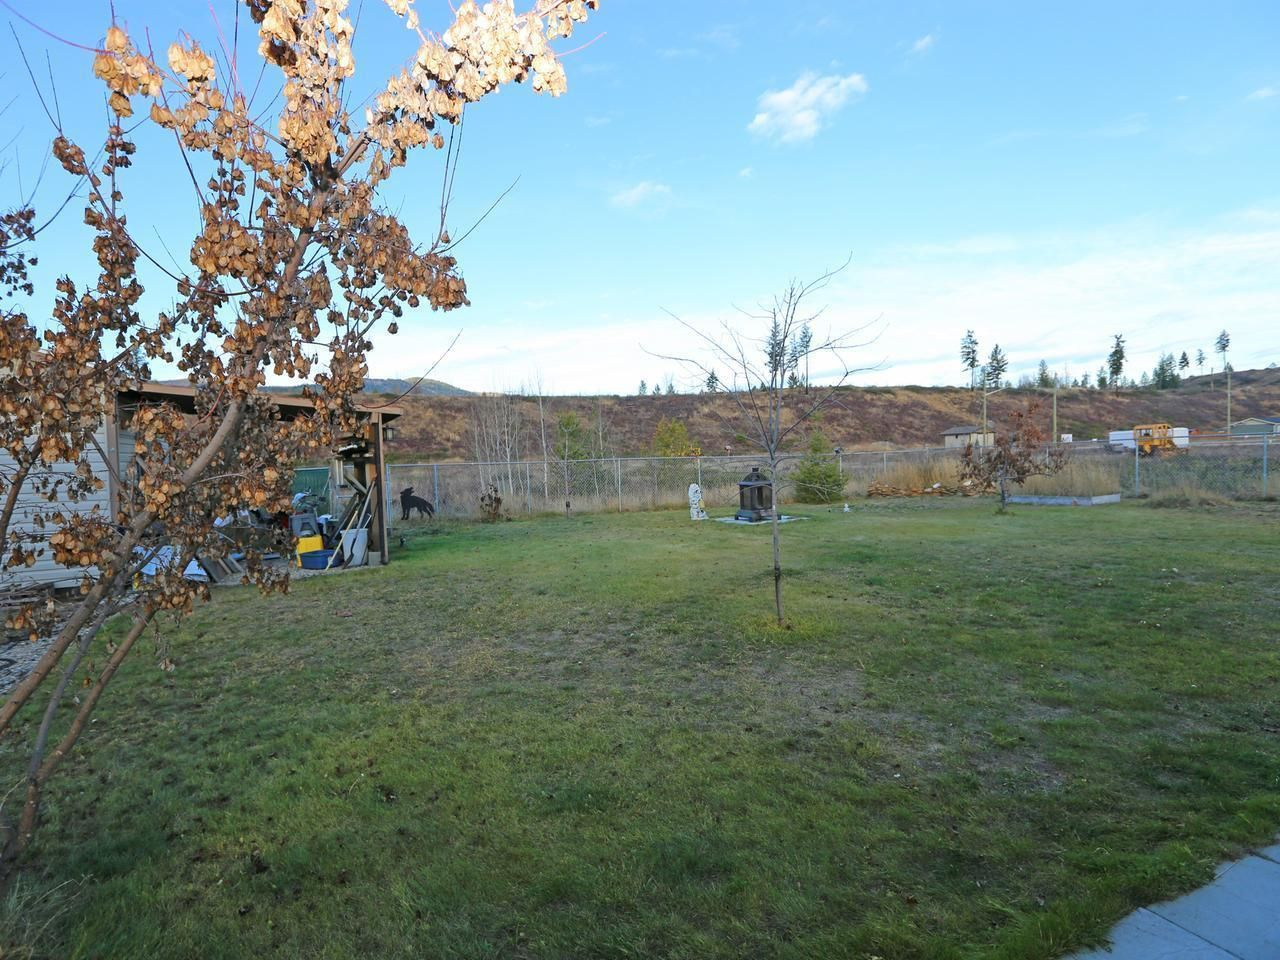 Photo 23: Photos: 405 McLean Drive in Barriere: BA House for sale (NE)  : MLS®# 162815